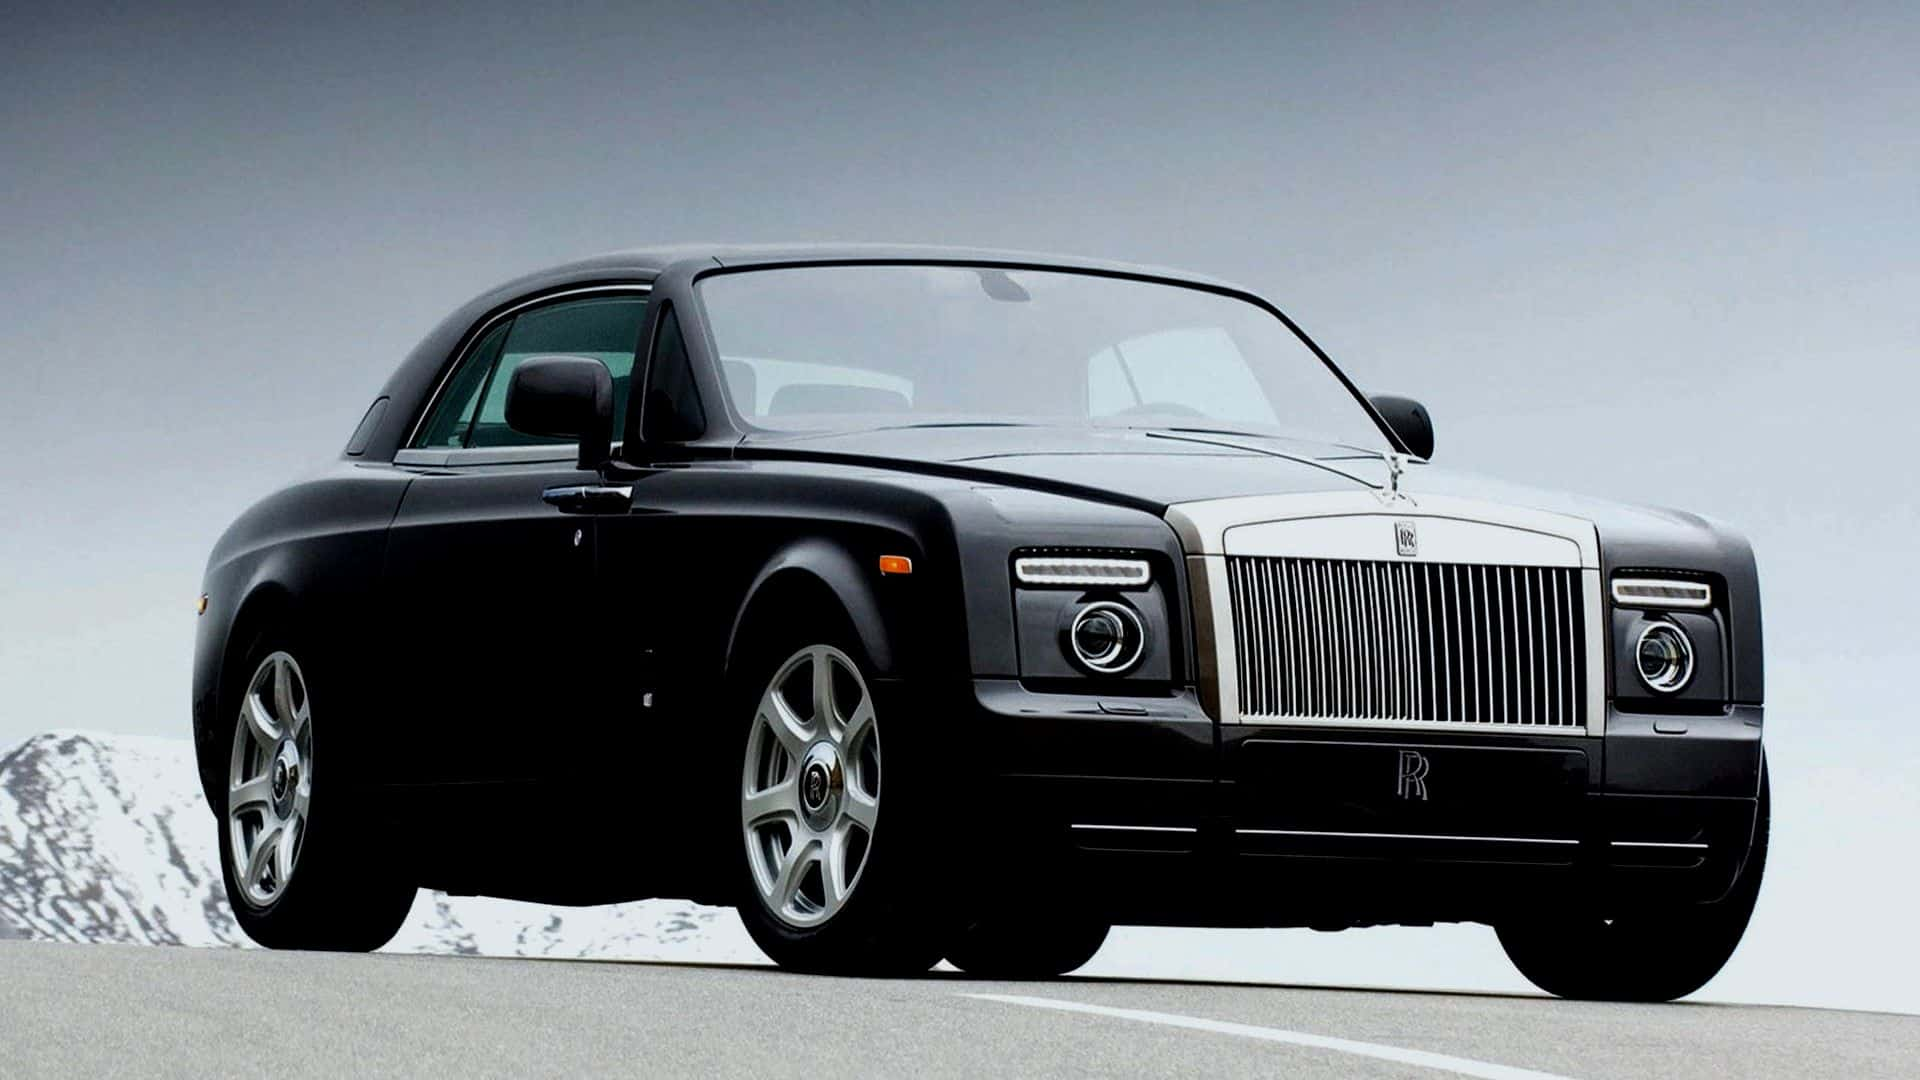 Luxury Motors: Rolls Royce Phantom